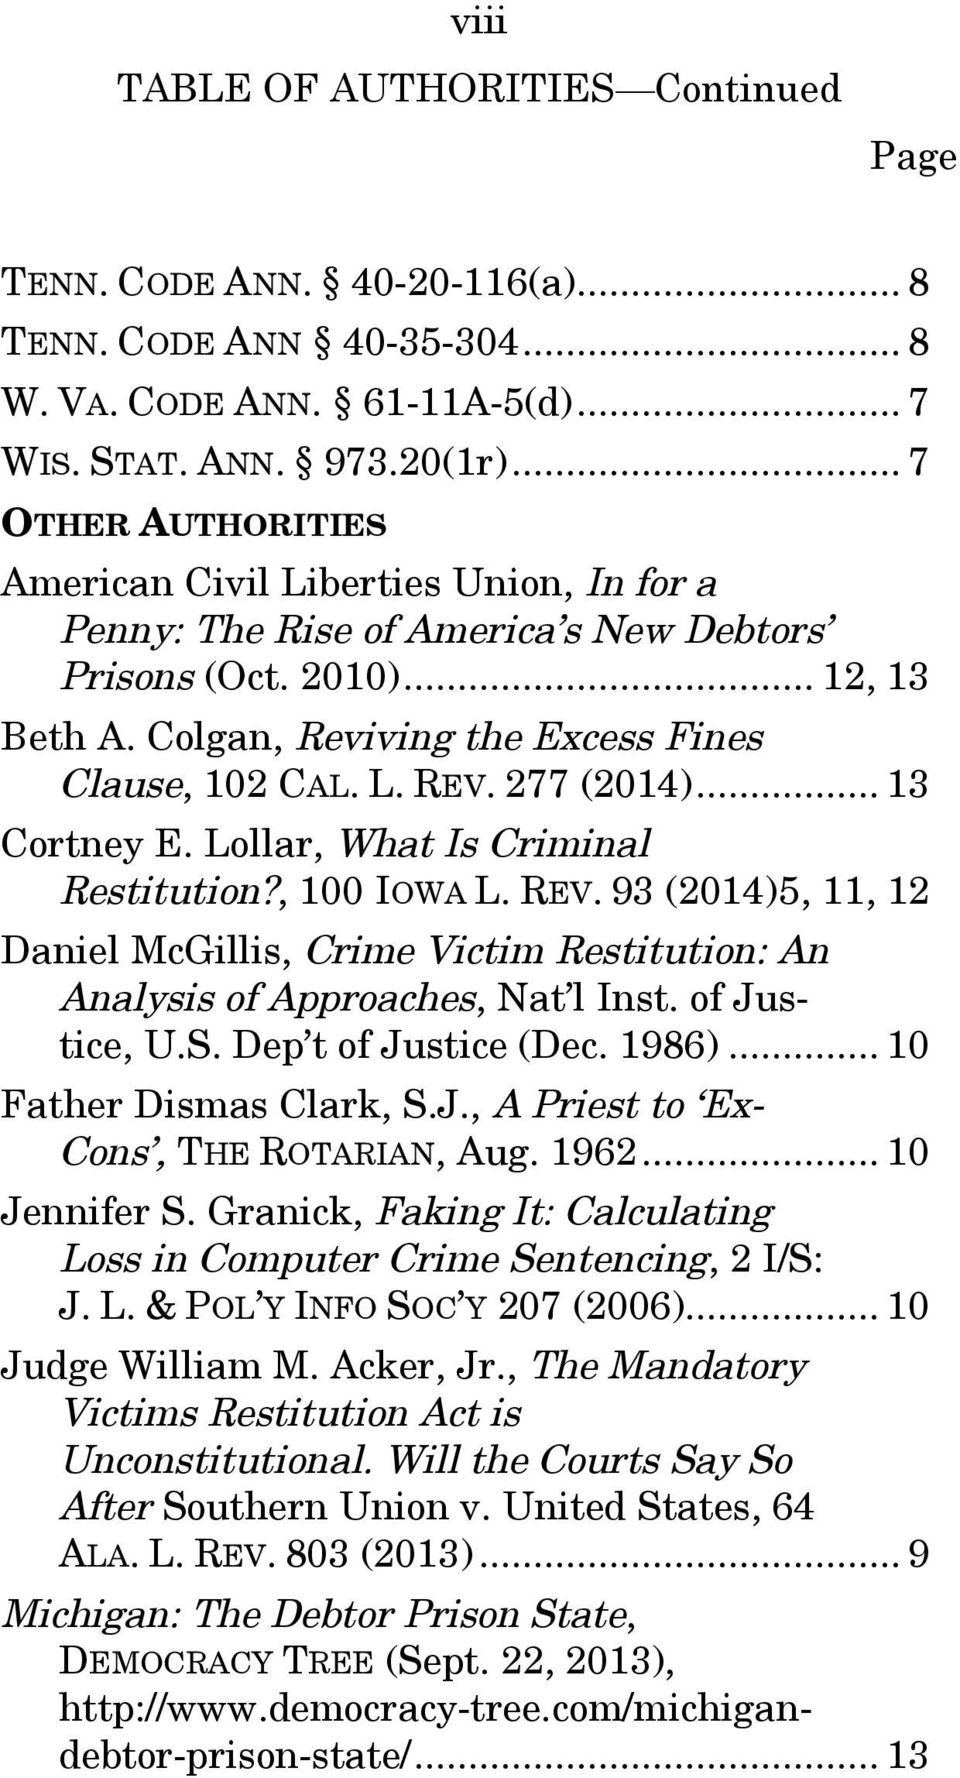 277 (2014)... 13 Cortney E. Lollar, What Is Criminal Restitution?, 100 IOWA L. REV. 93 (2014)5, 11, 12 Daniel McGillis, Crime Victim Restitution: An Analysis of Approaches, Nat l Inst. of Justice, U.